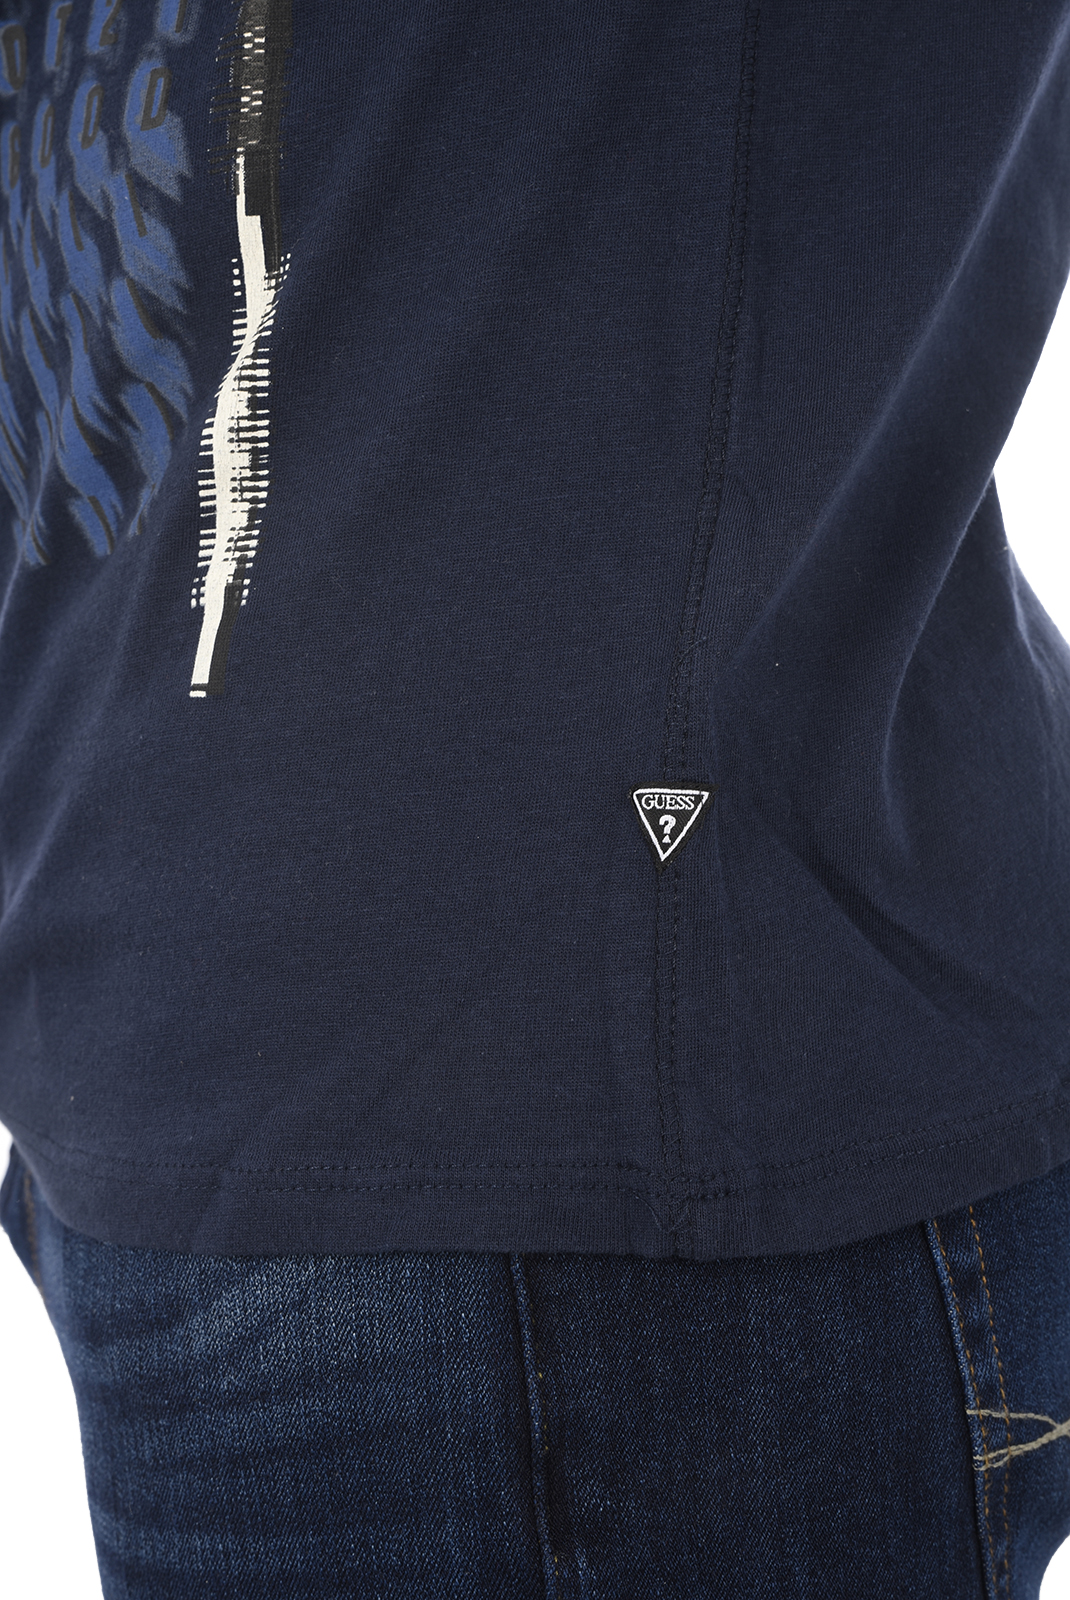 T-S manches courtes  Guess jeans M82I24 I3Z00 G720 BLUE NAVY